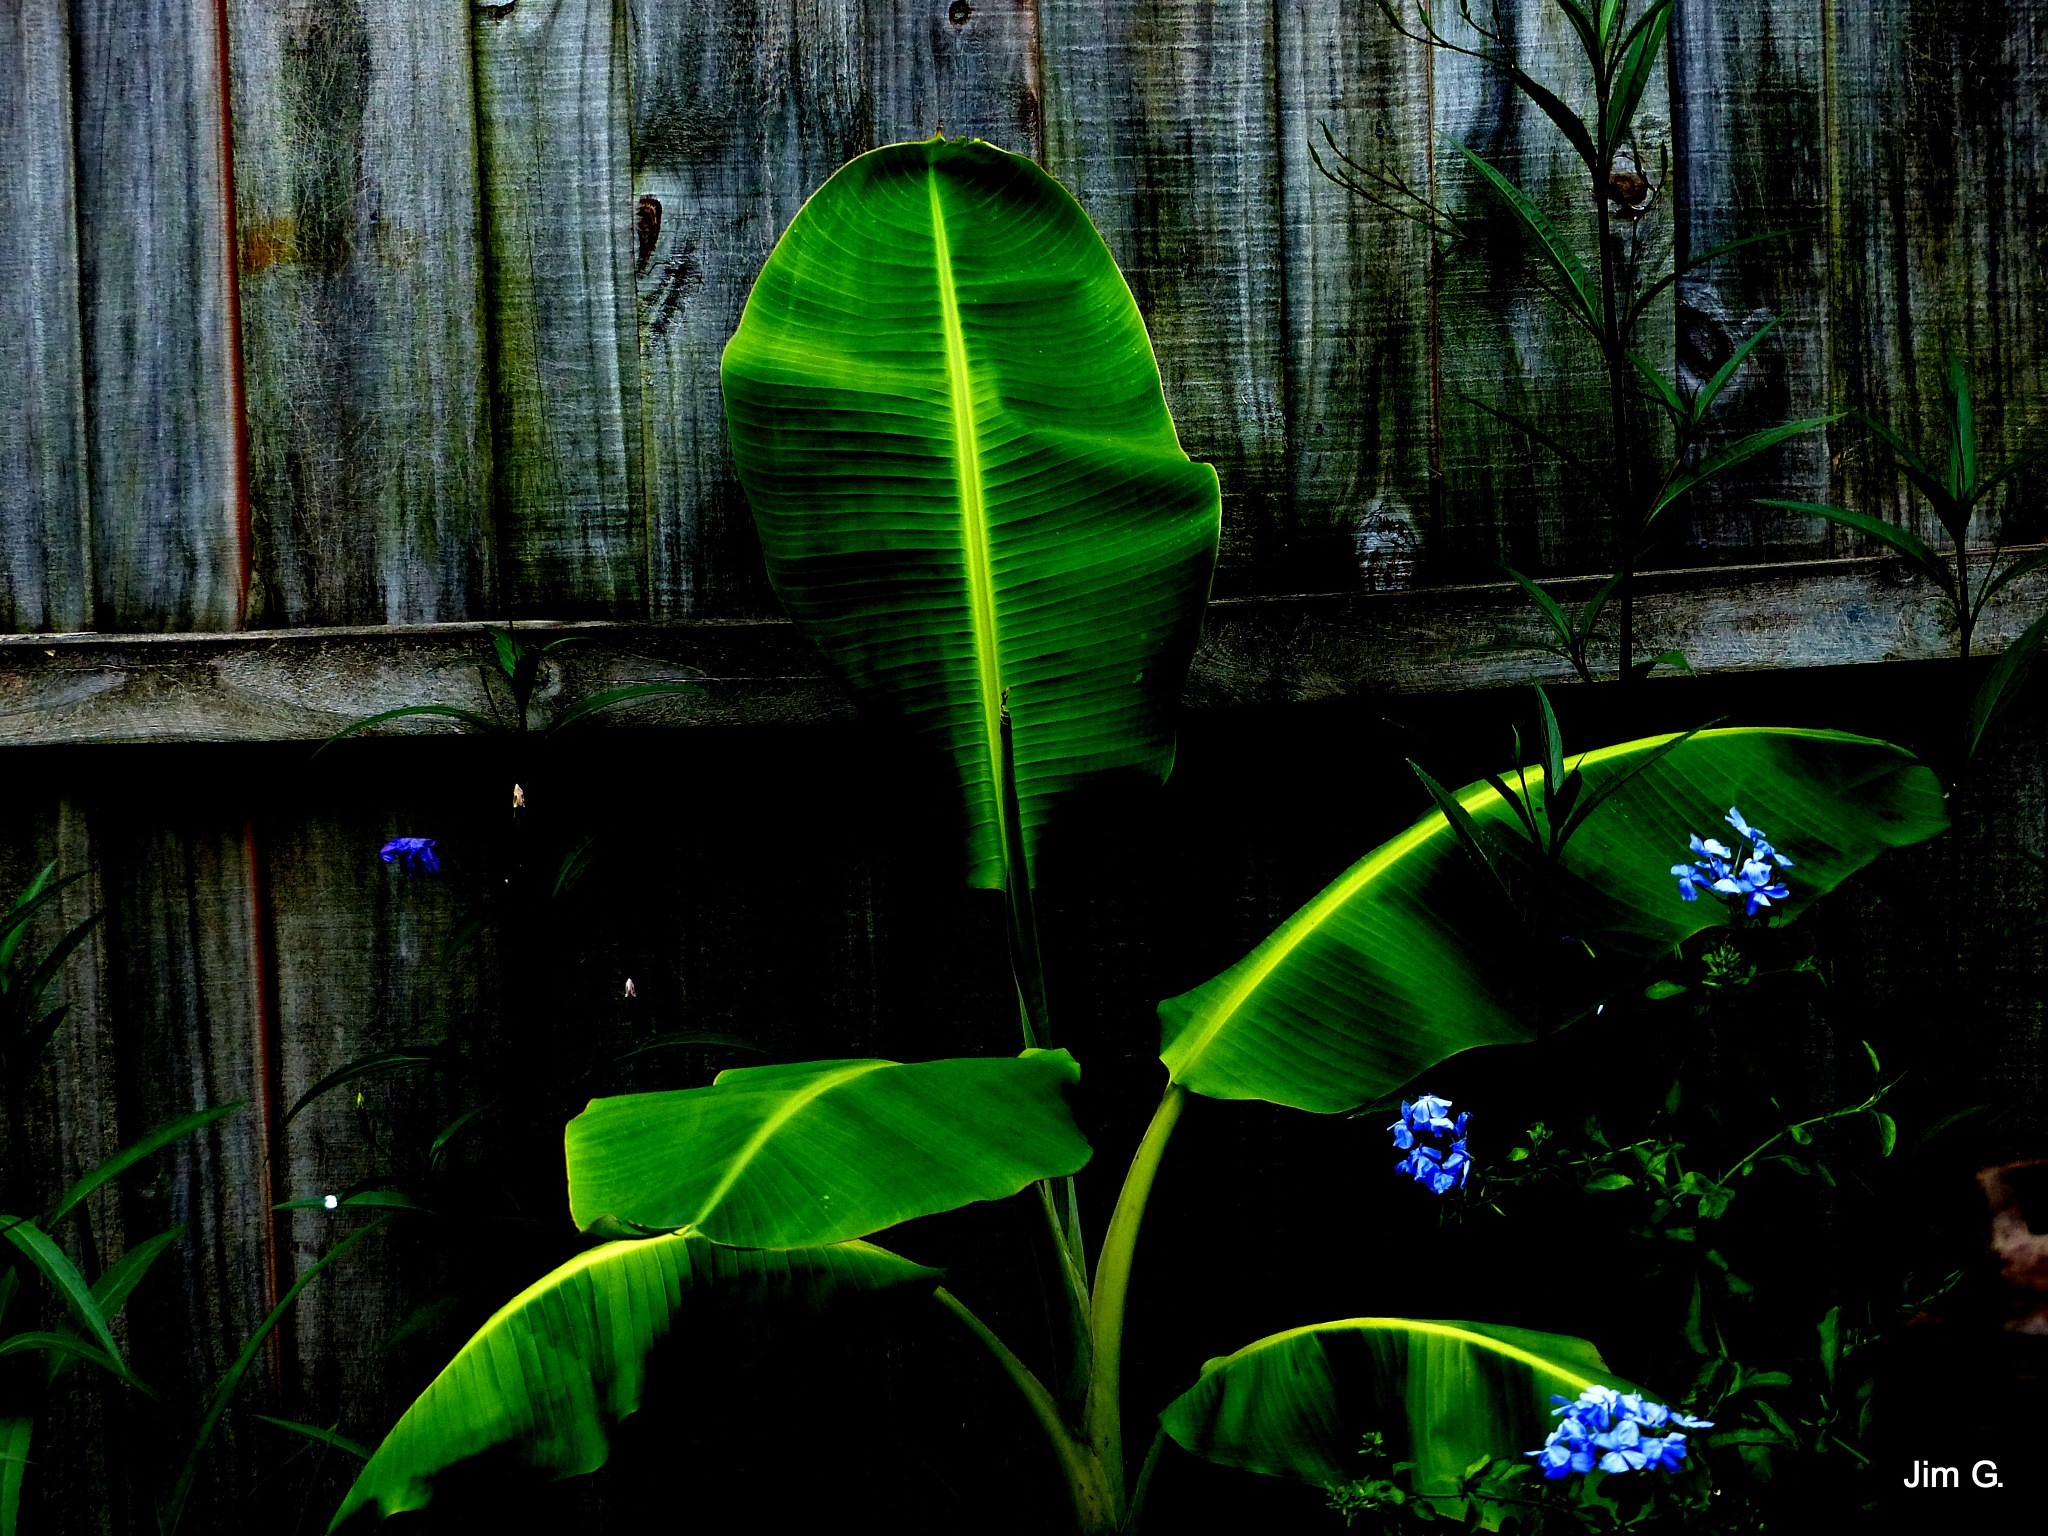 Banana Plant with Fluorescent spines on Leaves by Jim Graham